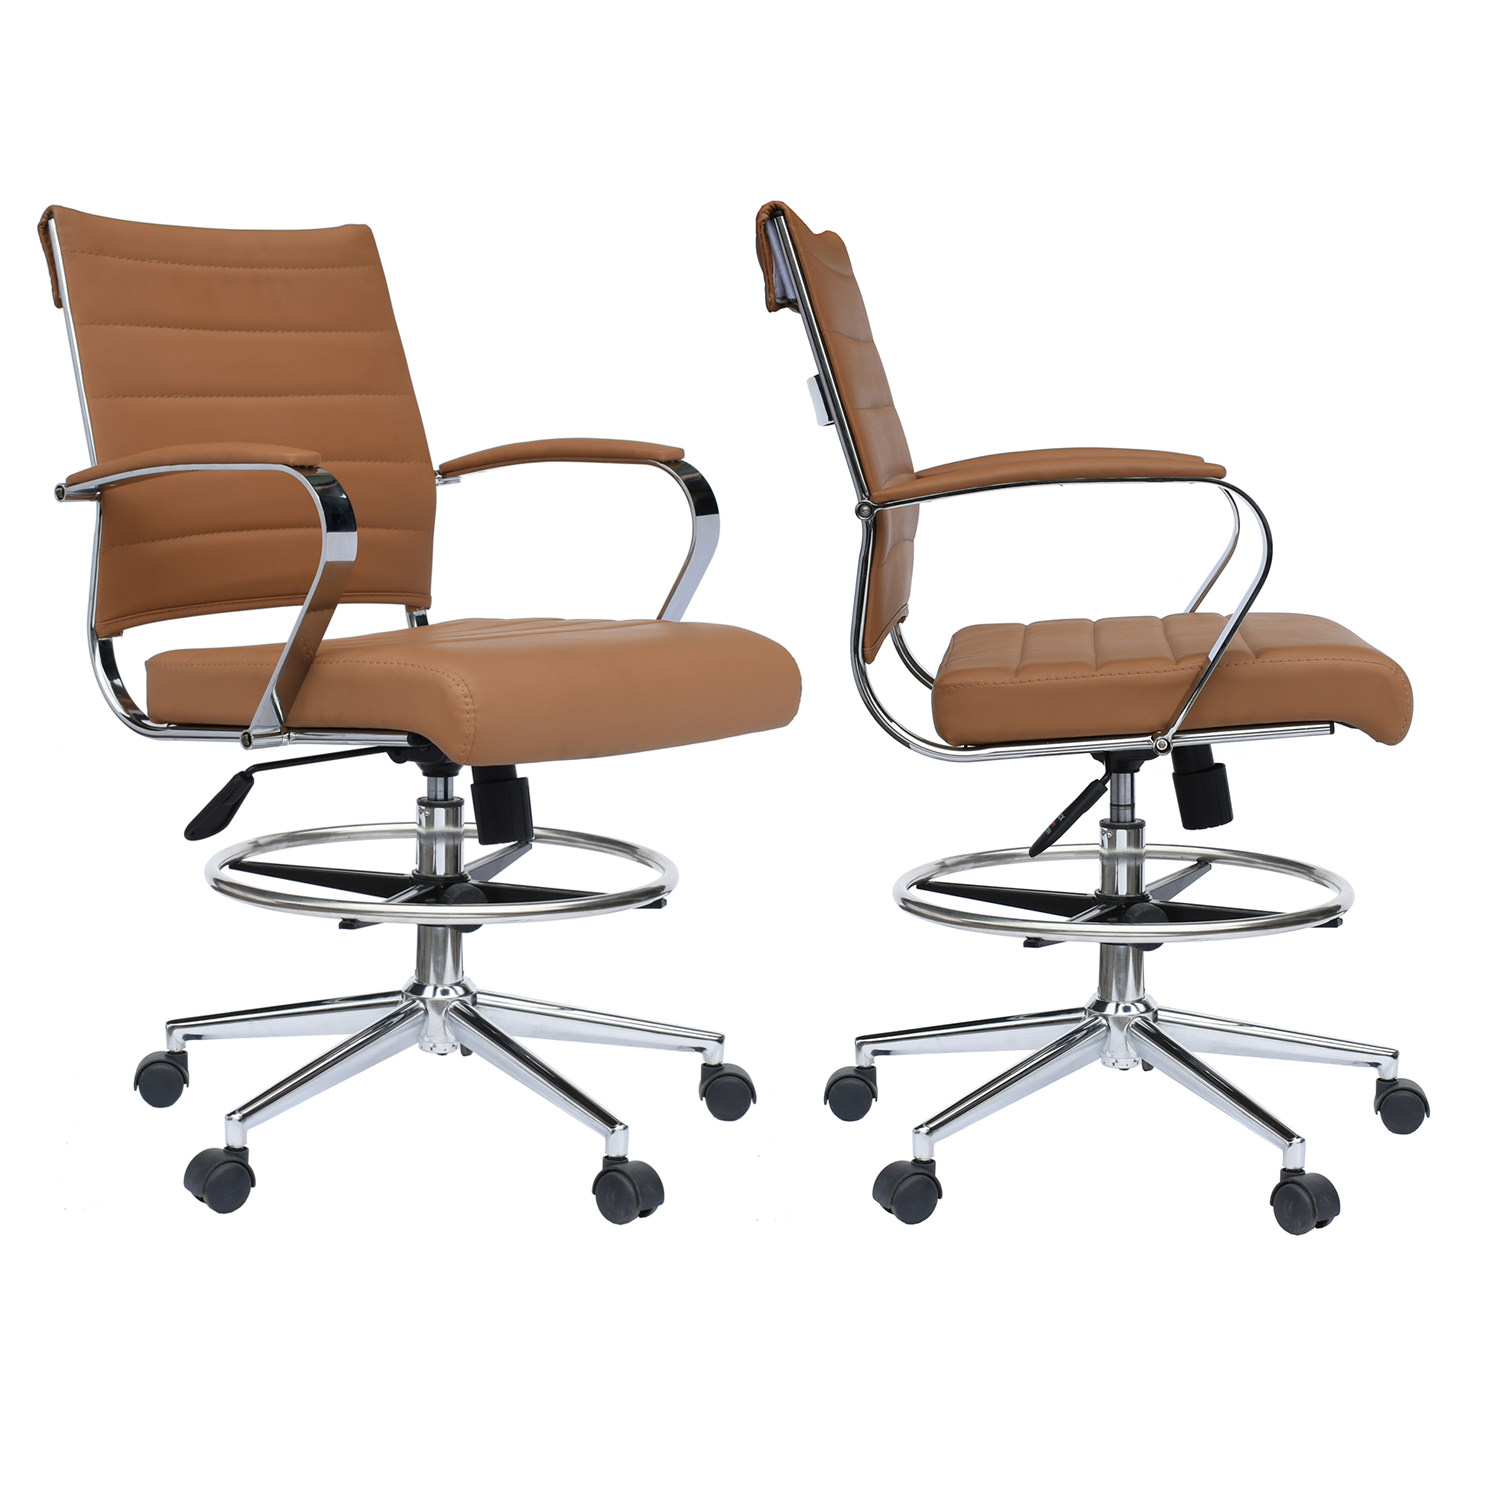 2xhome Set of 2 Black Office Chair Ribbed Padded Open Mid Back With Wheels And Chrome Arms For Home Office Conference Room Tilt Ribbed Adjustable Height Chrome Swivel and Drafting Chair Work